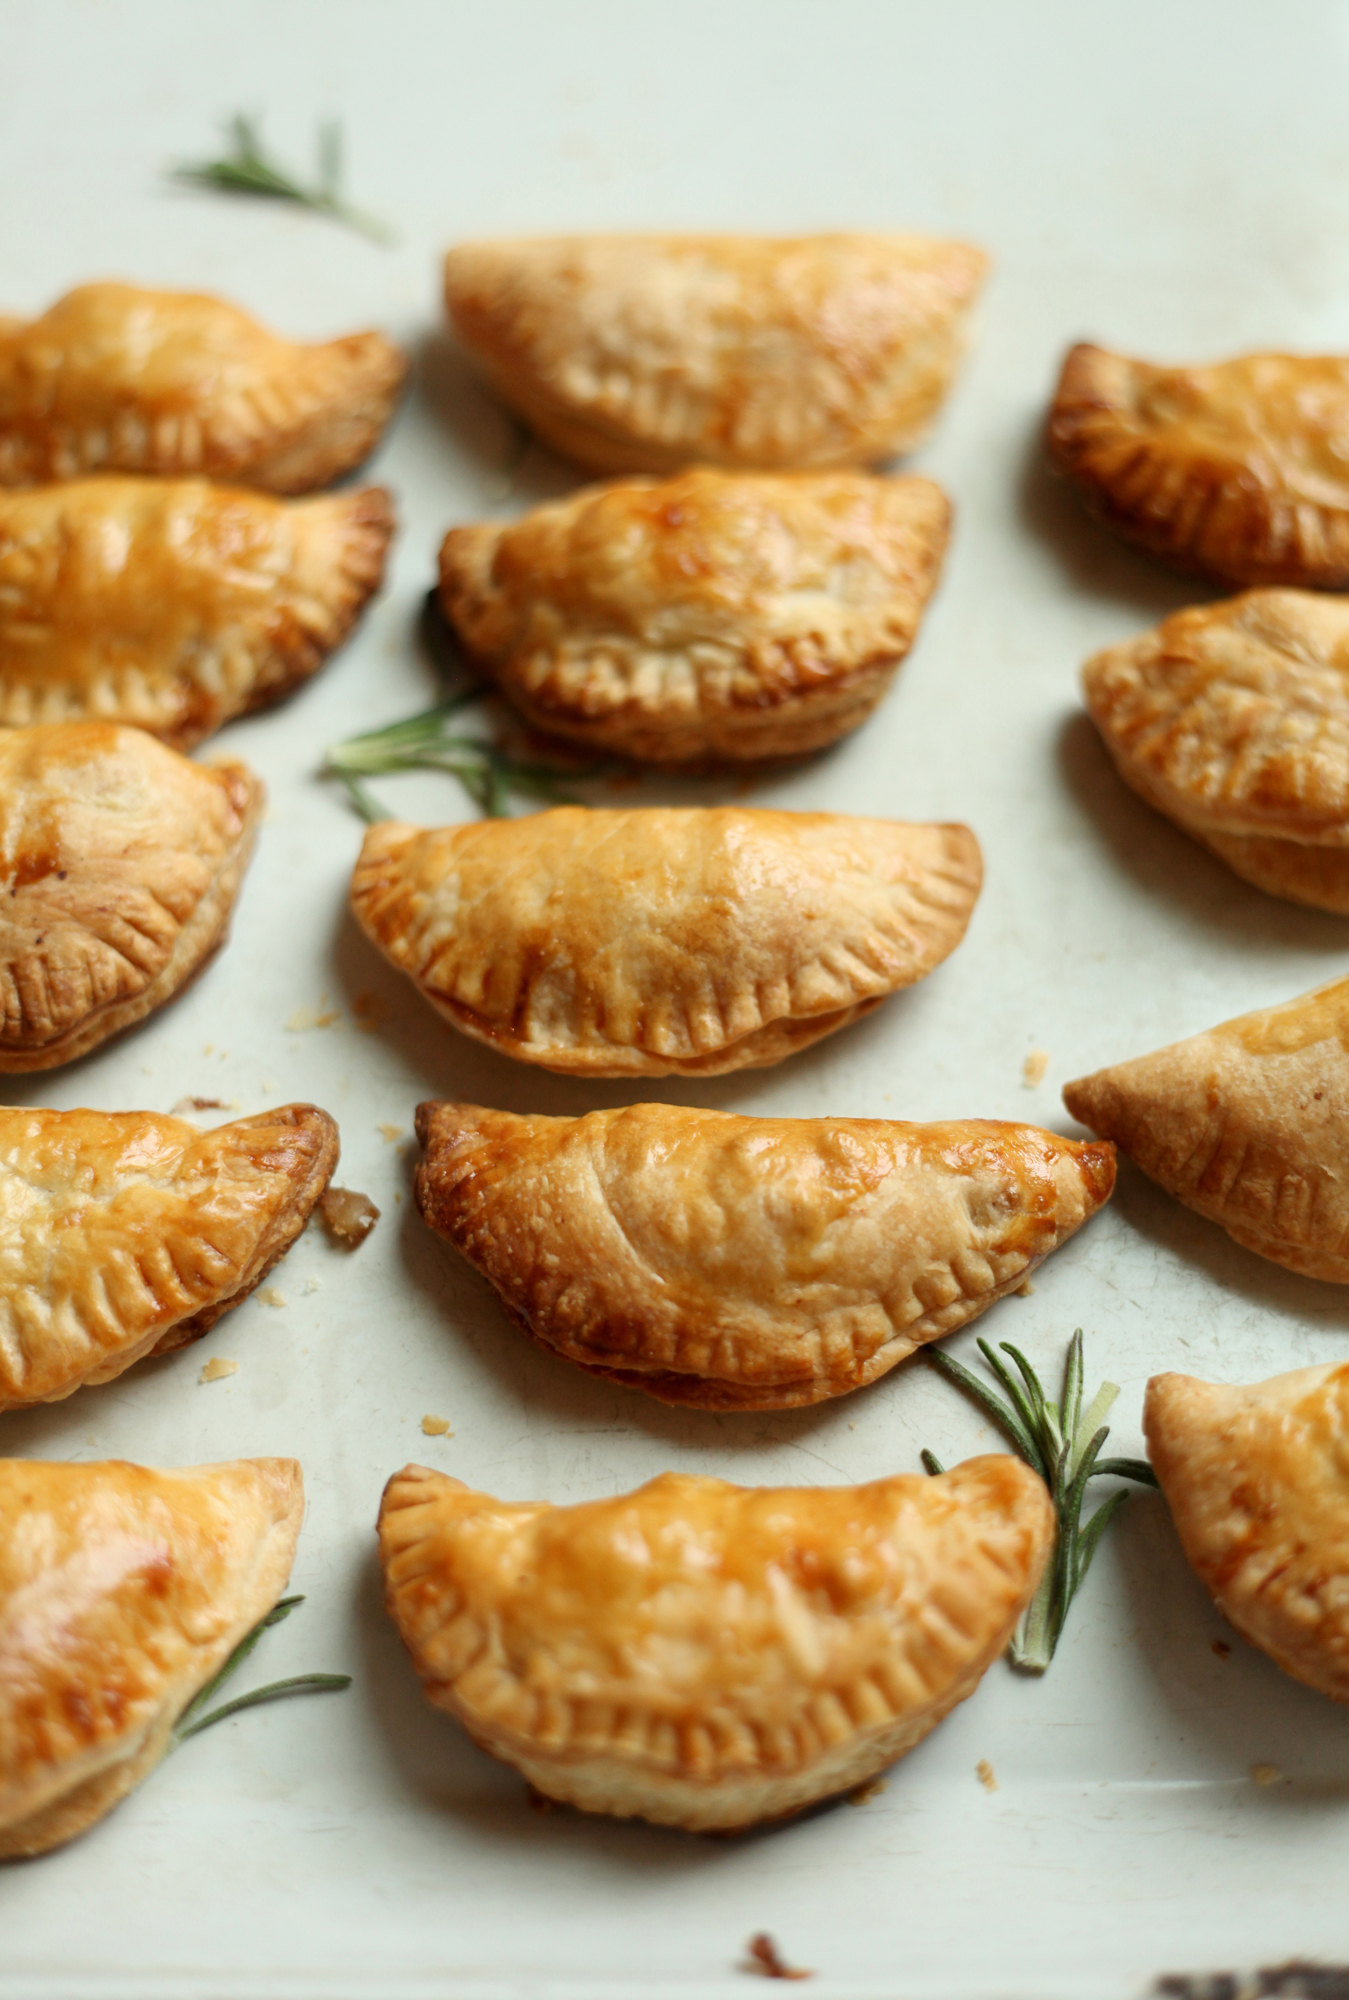 Sweet Potato and Parsnip Hand Pies